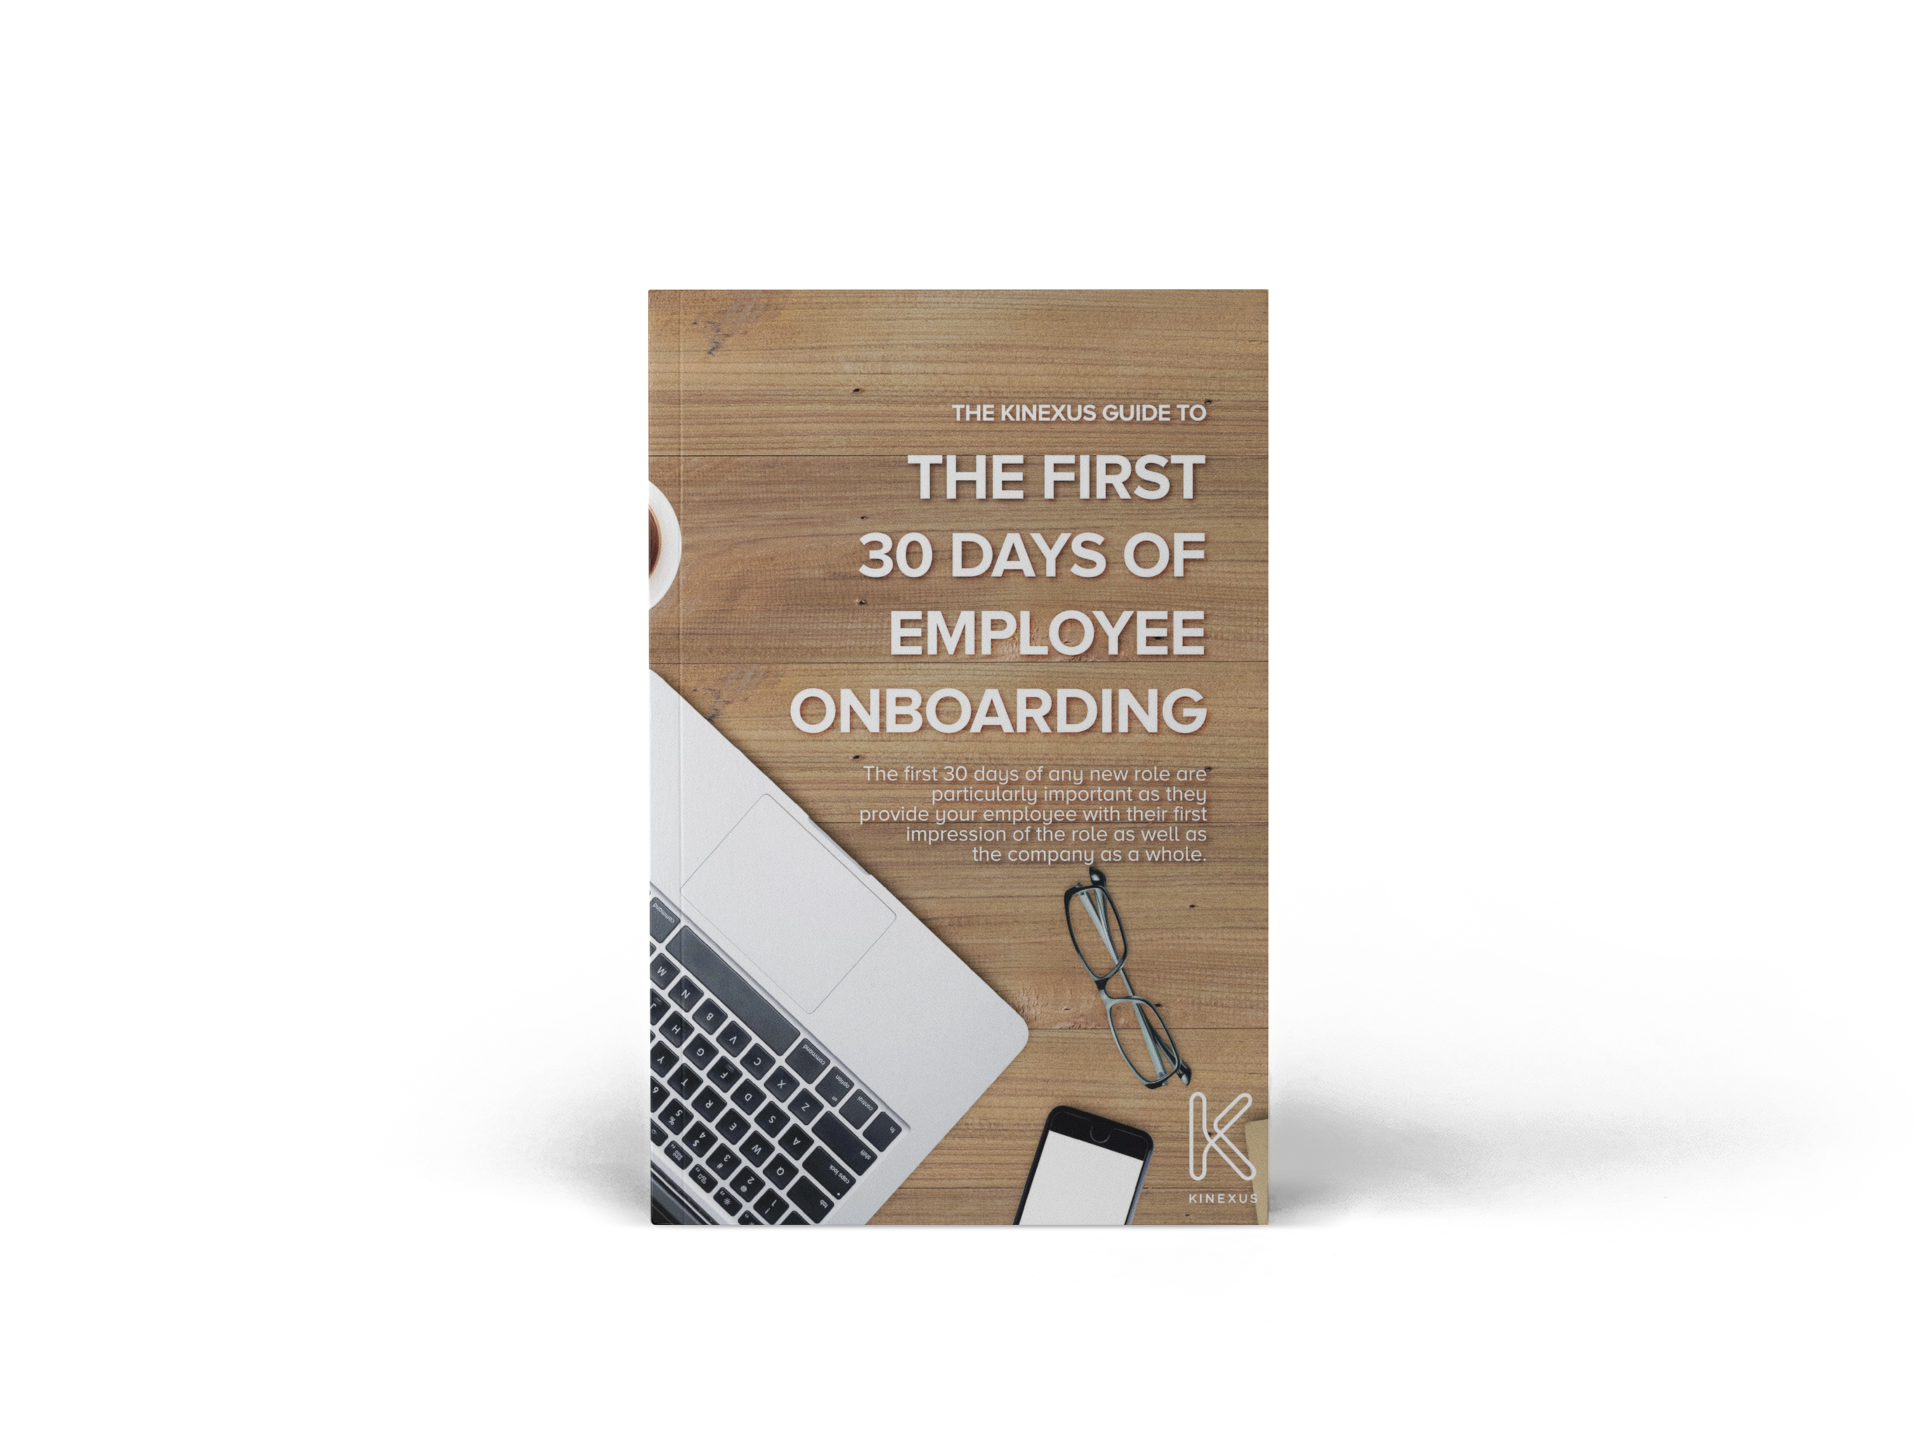 The First 30 Days of Employee Onboarding